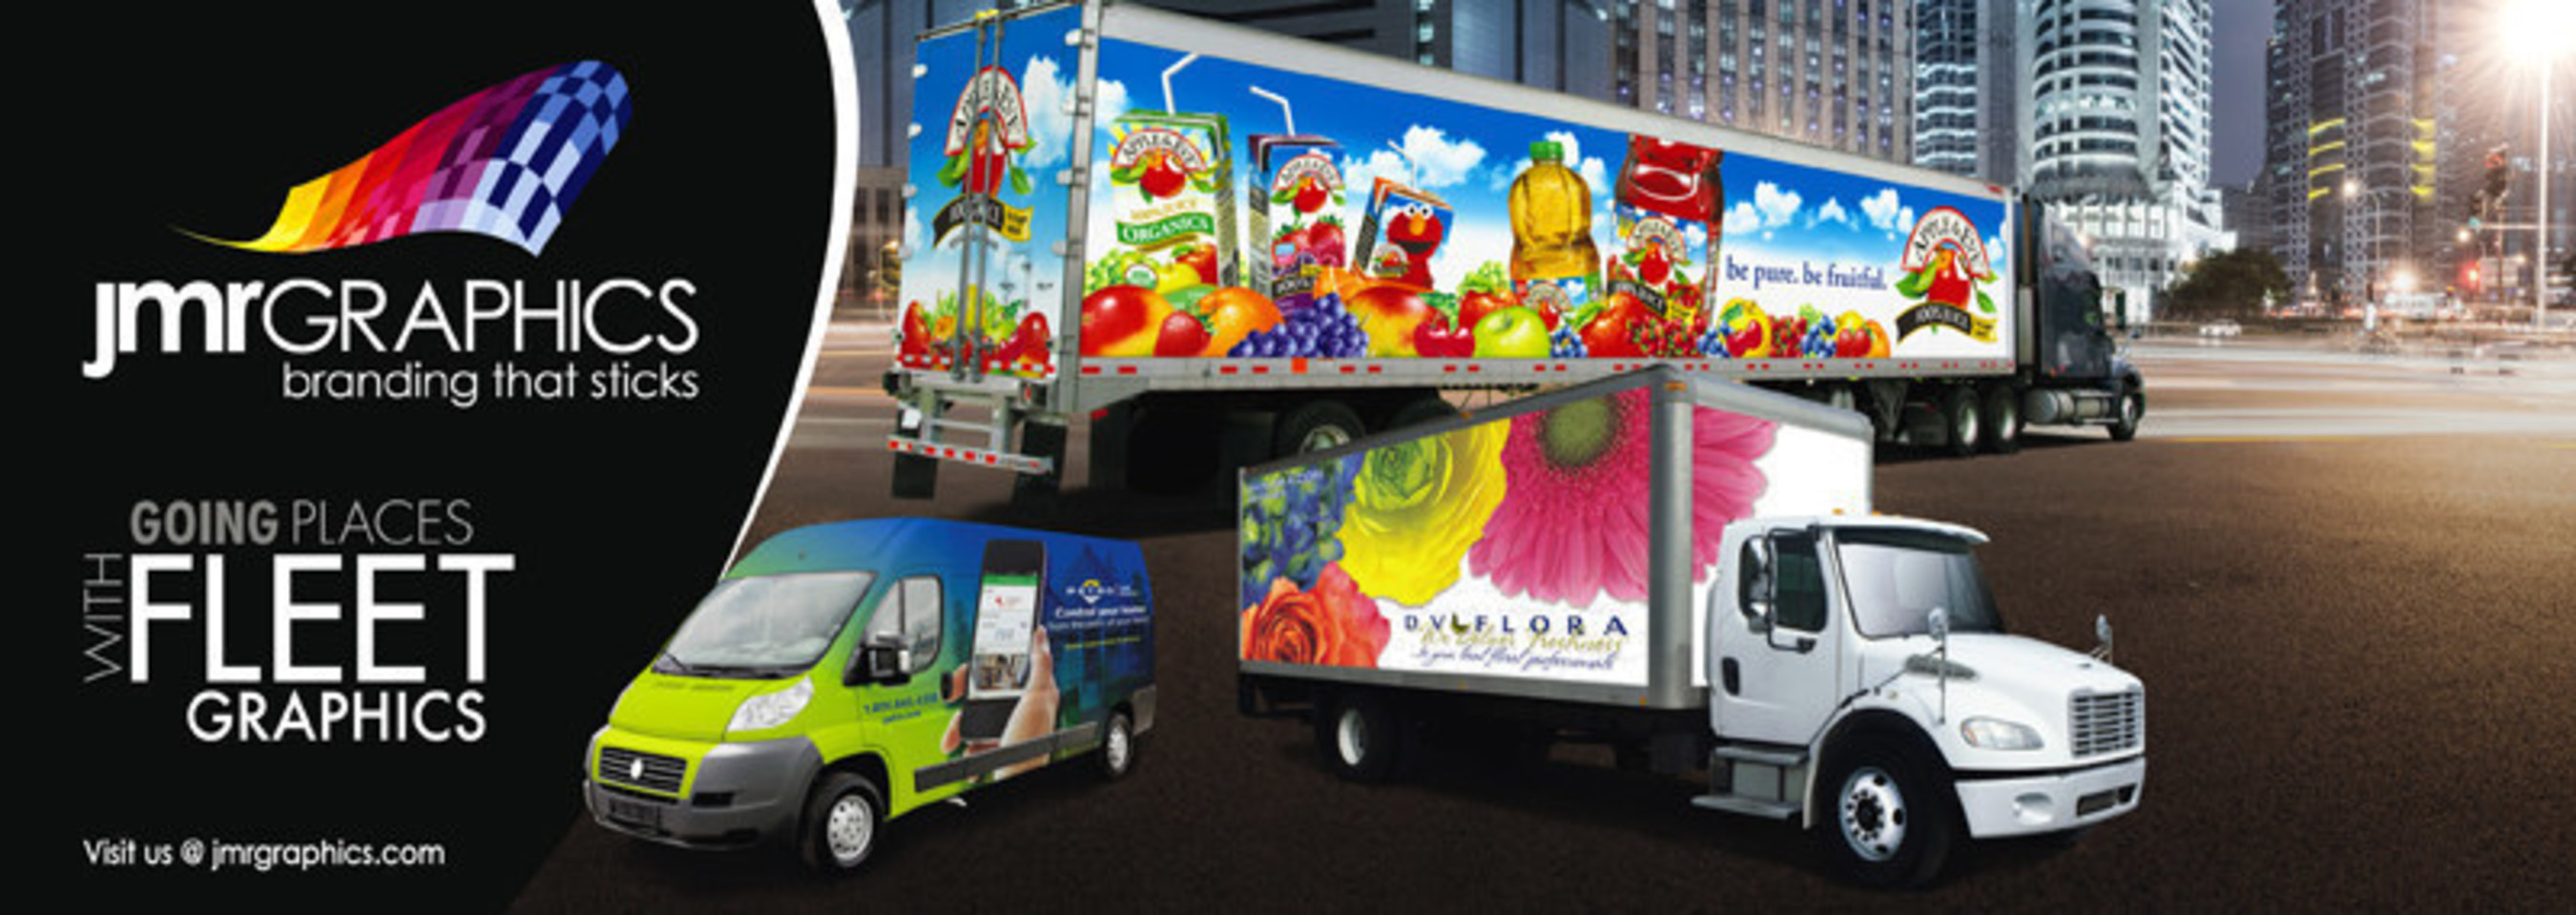 JMR Graphics Explains Why Vehicle Graphics Have Become so Popular in 2015